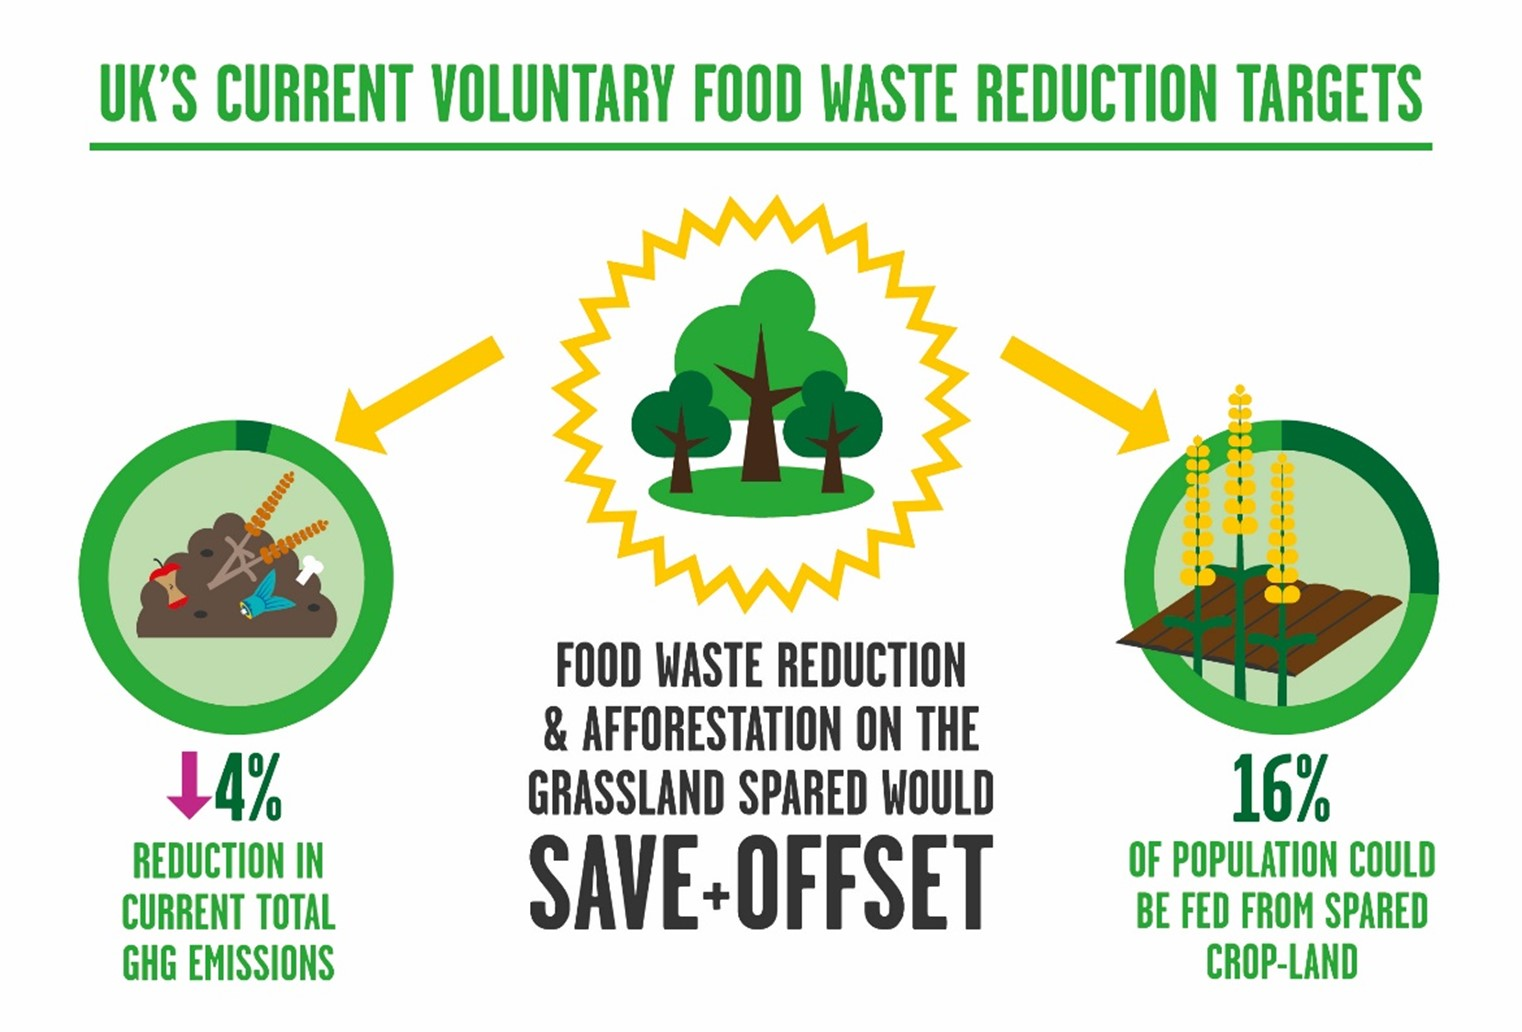 Figure: UK's current voluntary food waste reduction targets